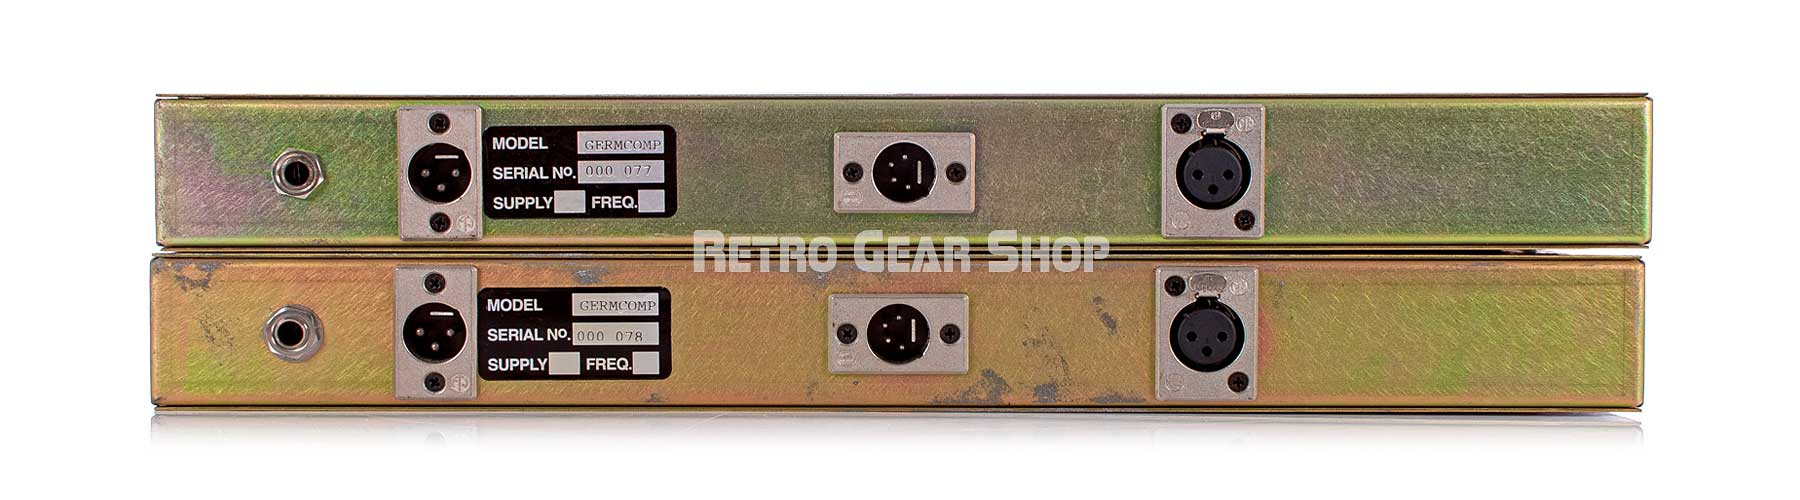 Chandler Limited Germanium Stereo Pair Rear